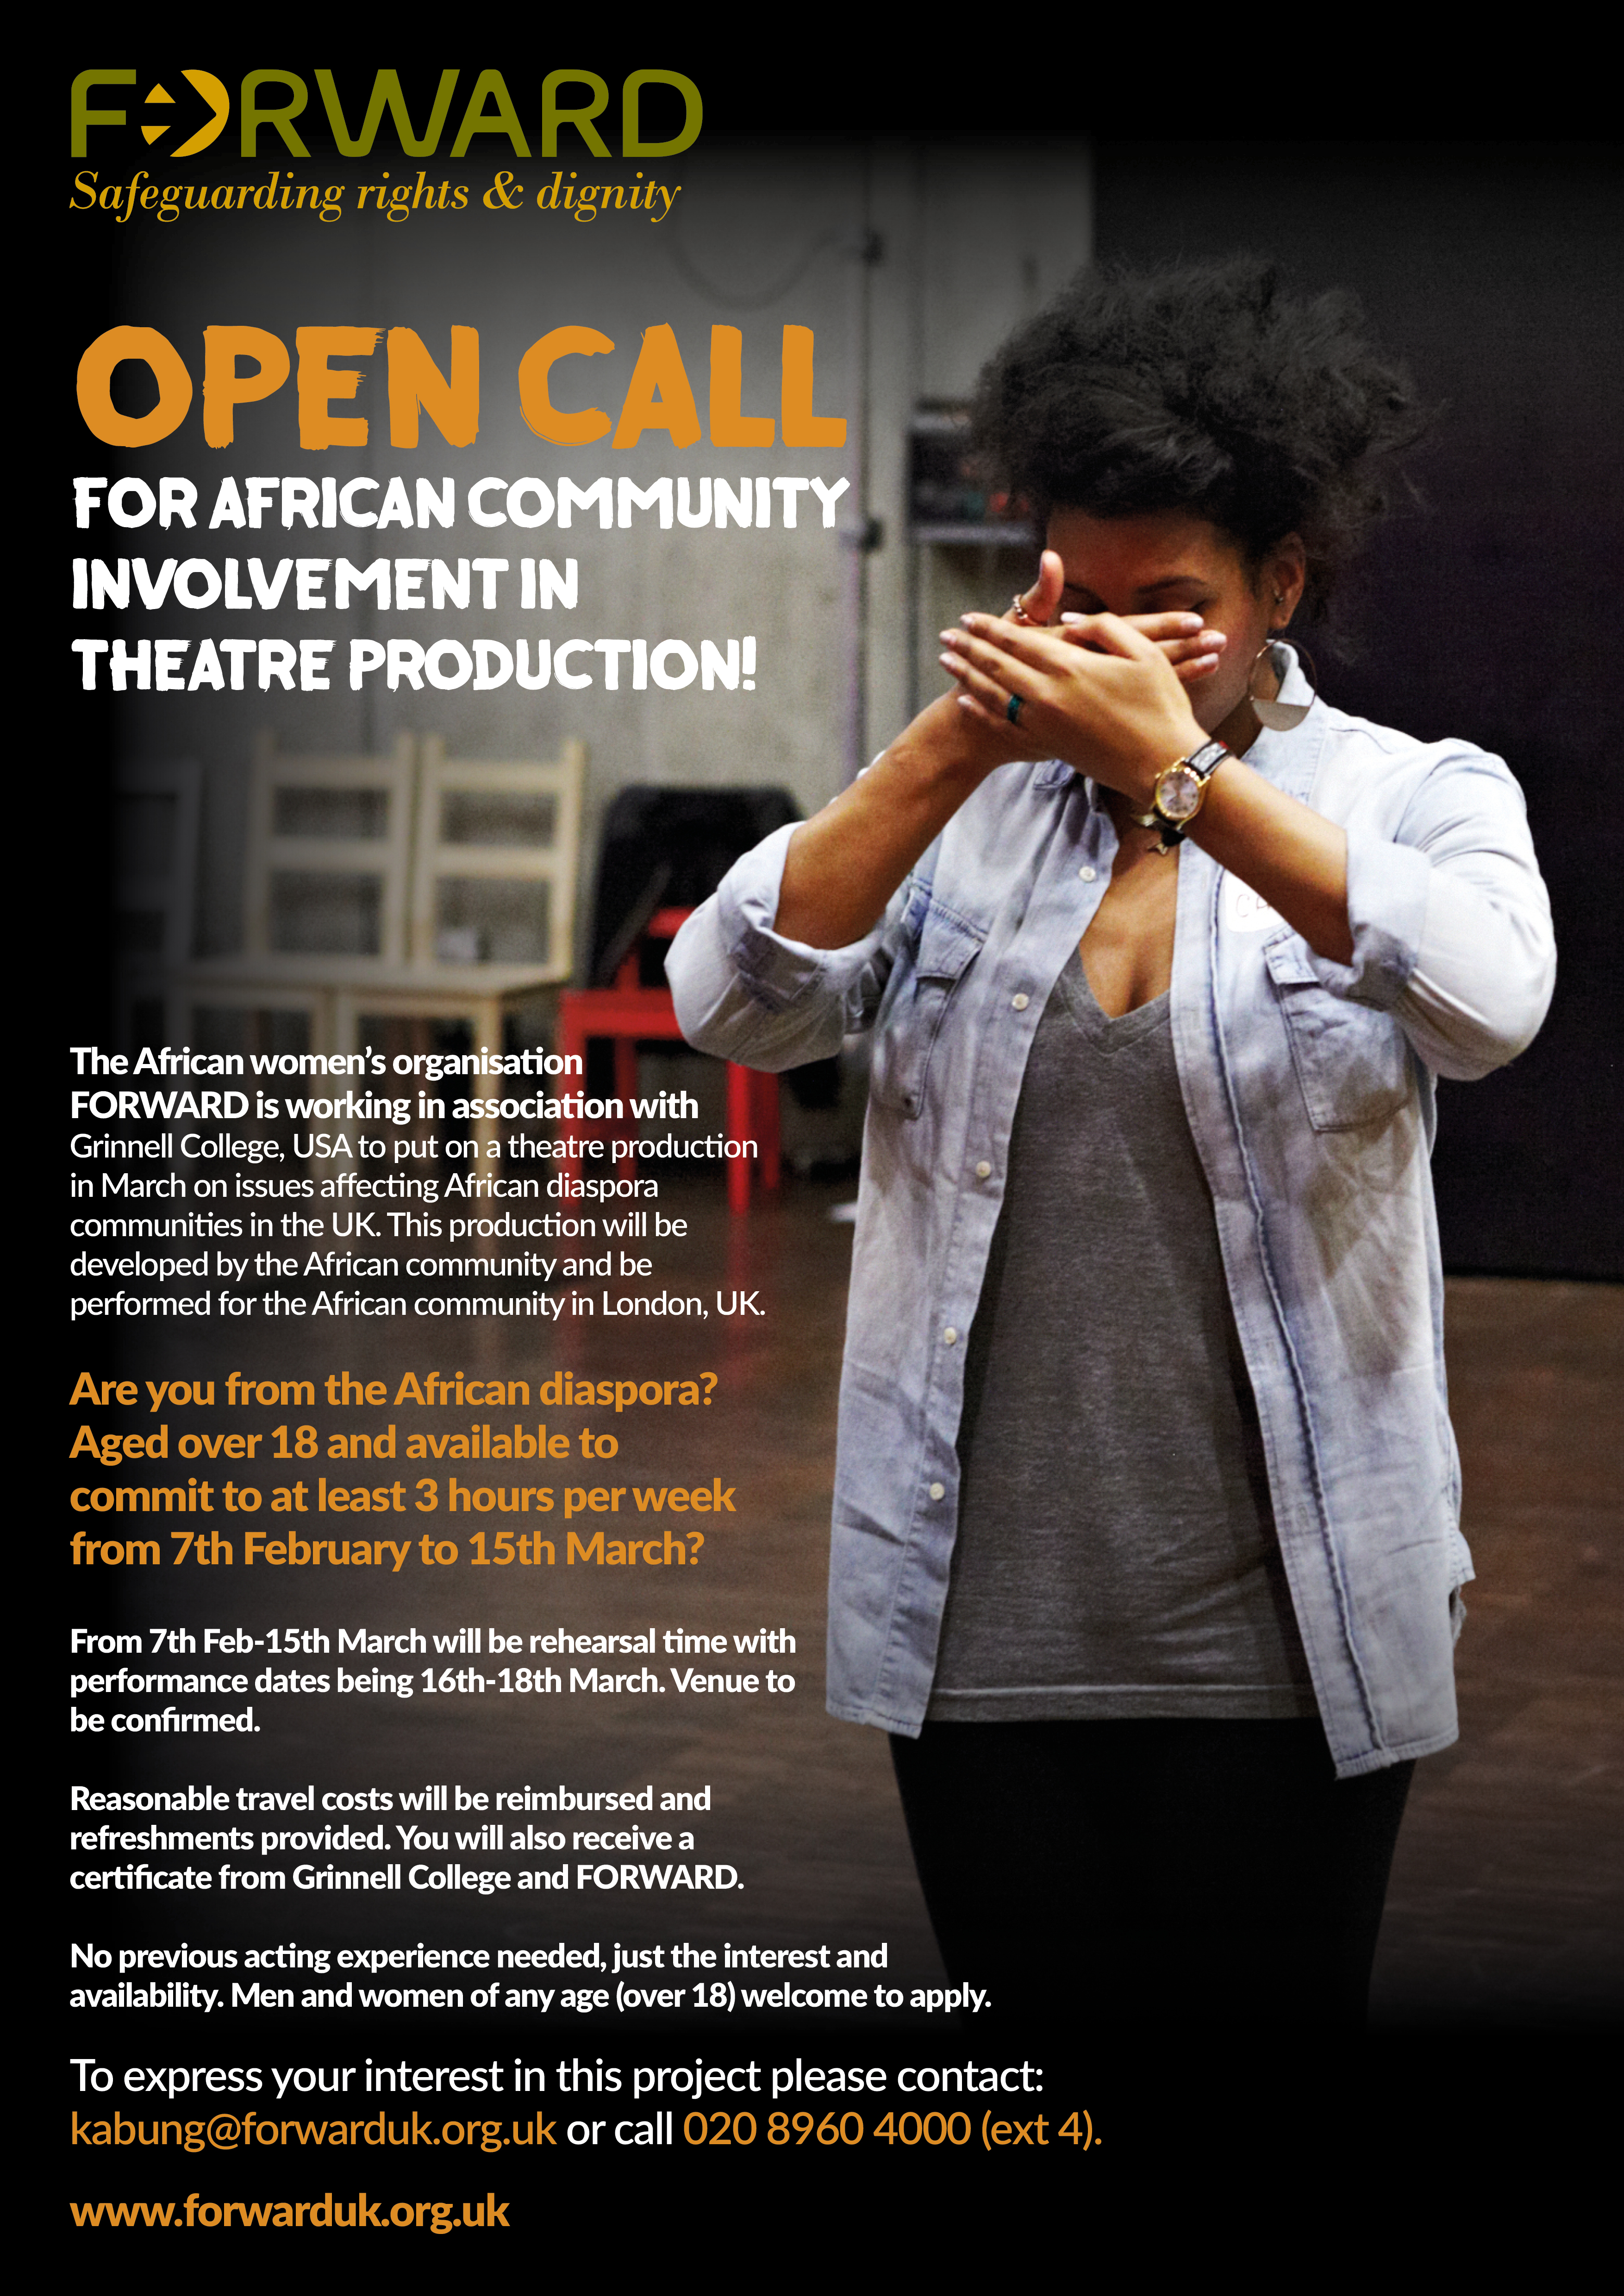 Open Call For African Community Involvement in Theatre Production